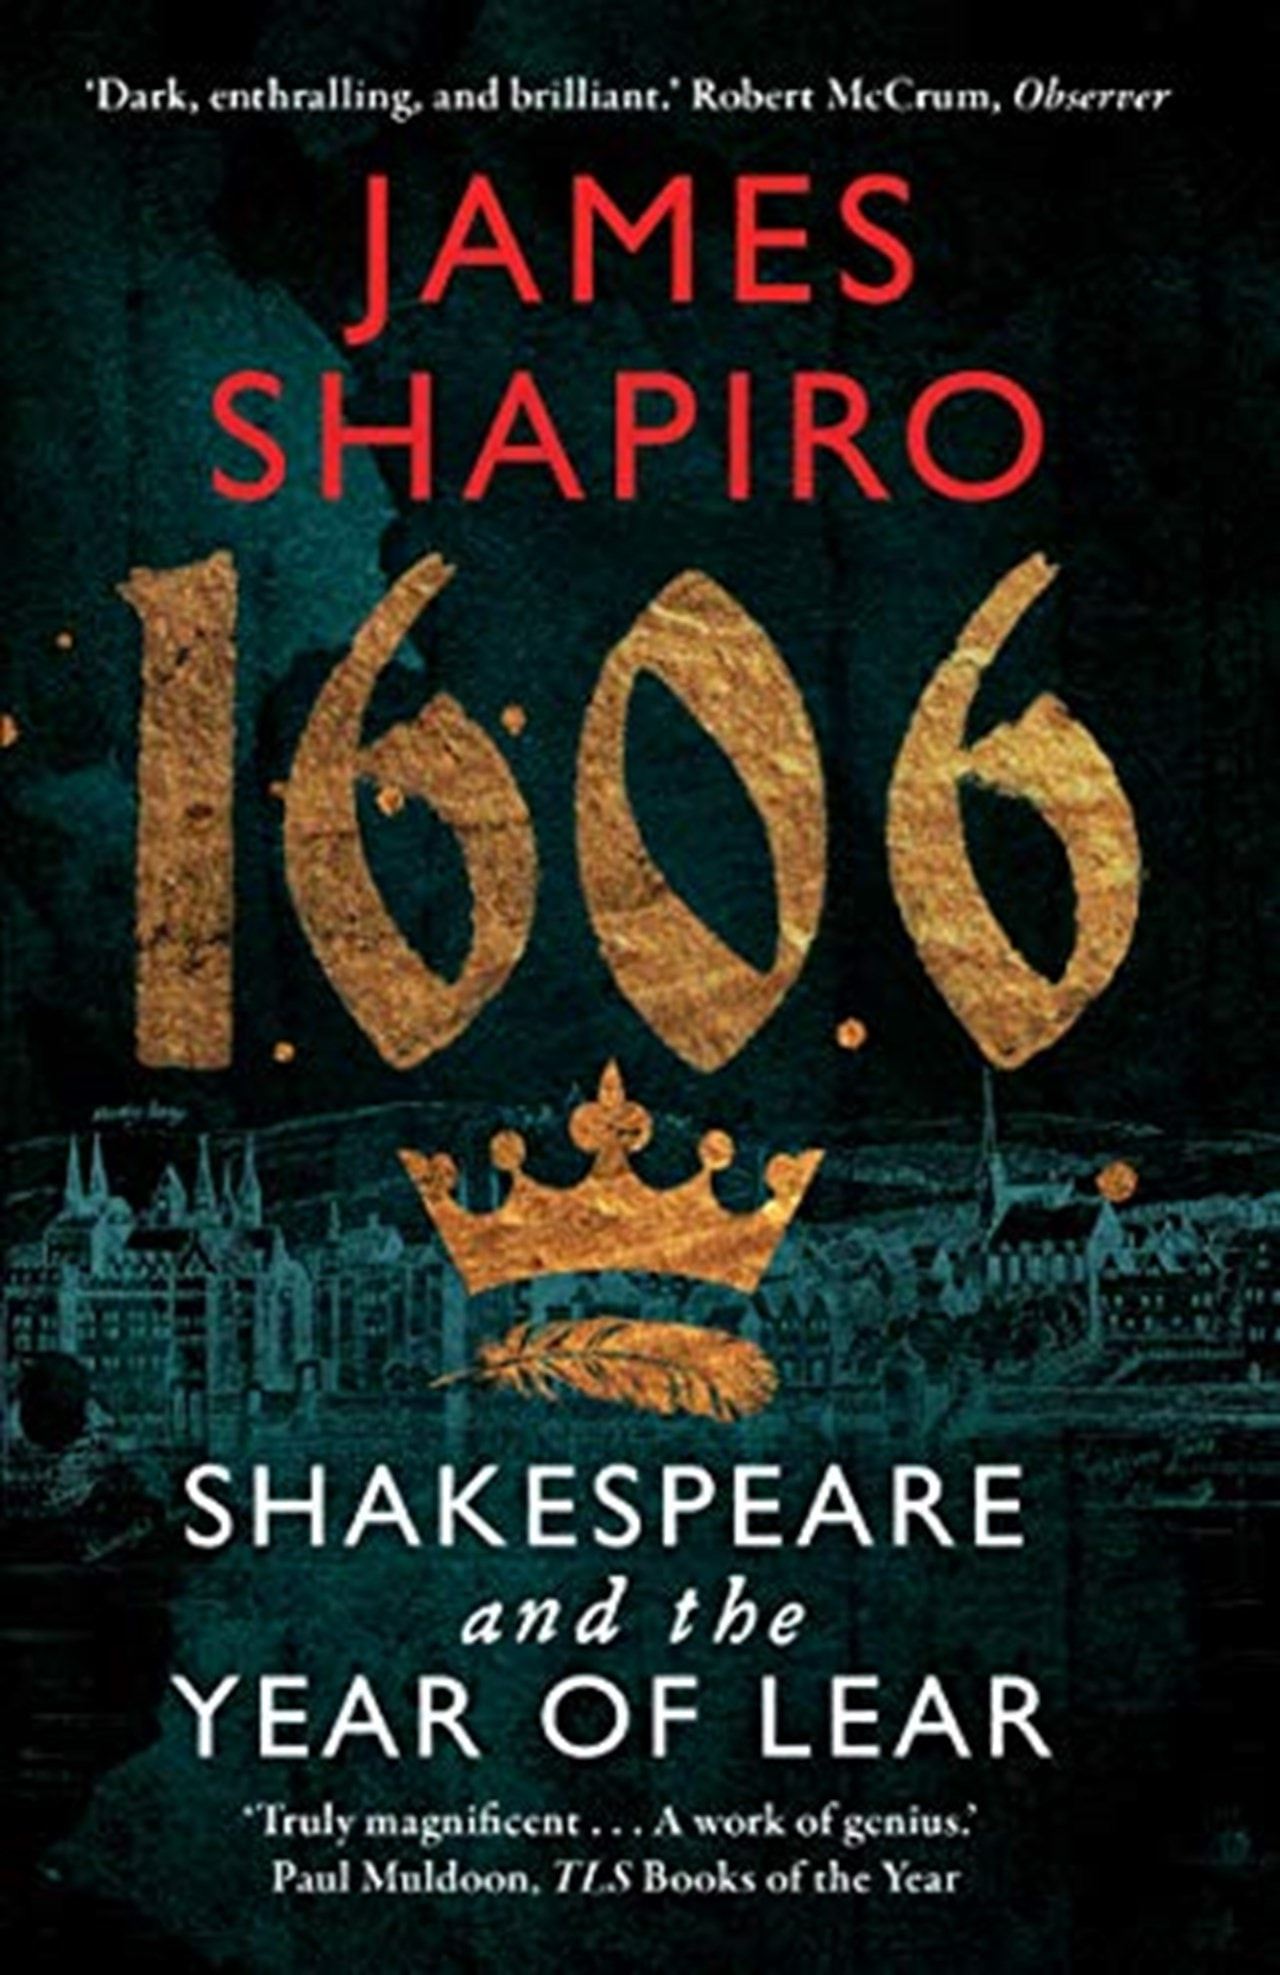 1606: Shakespeare And The Year of Lear - 1